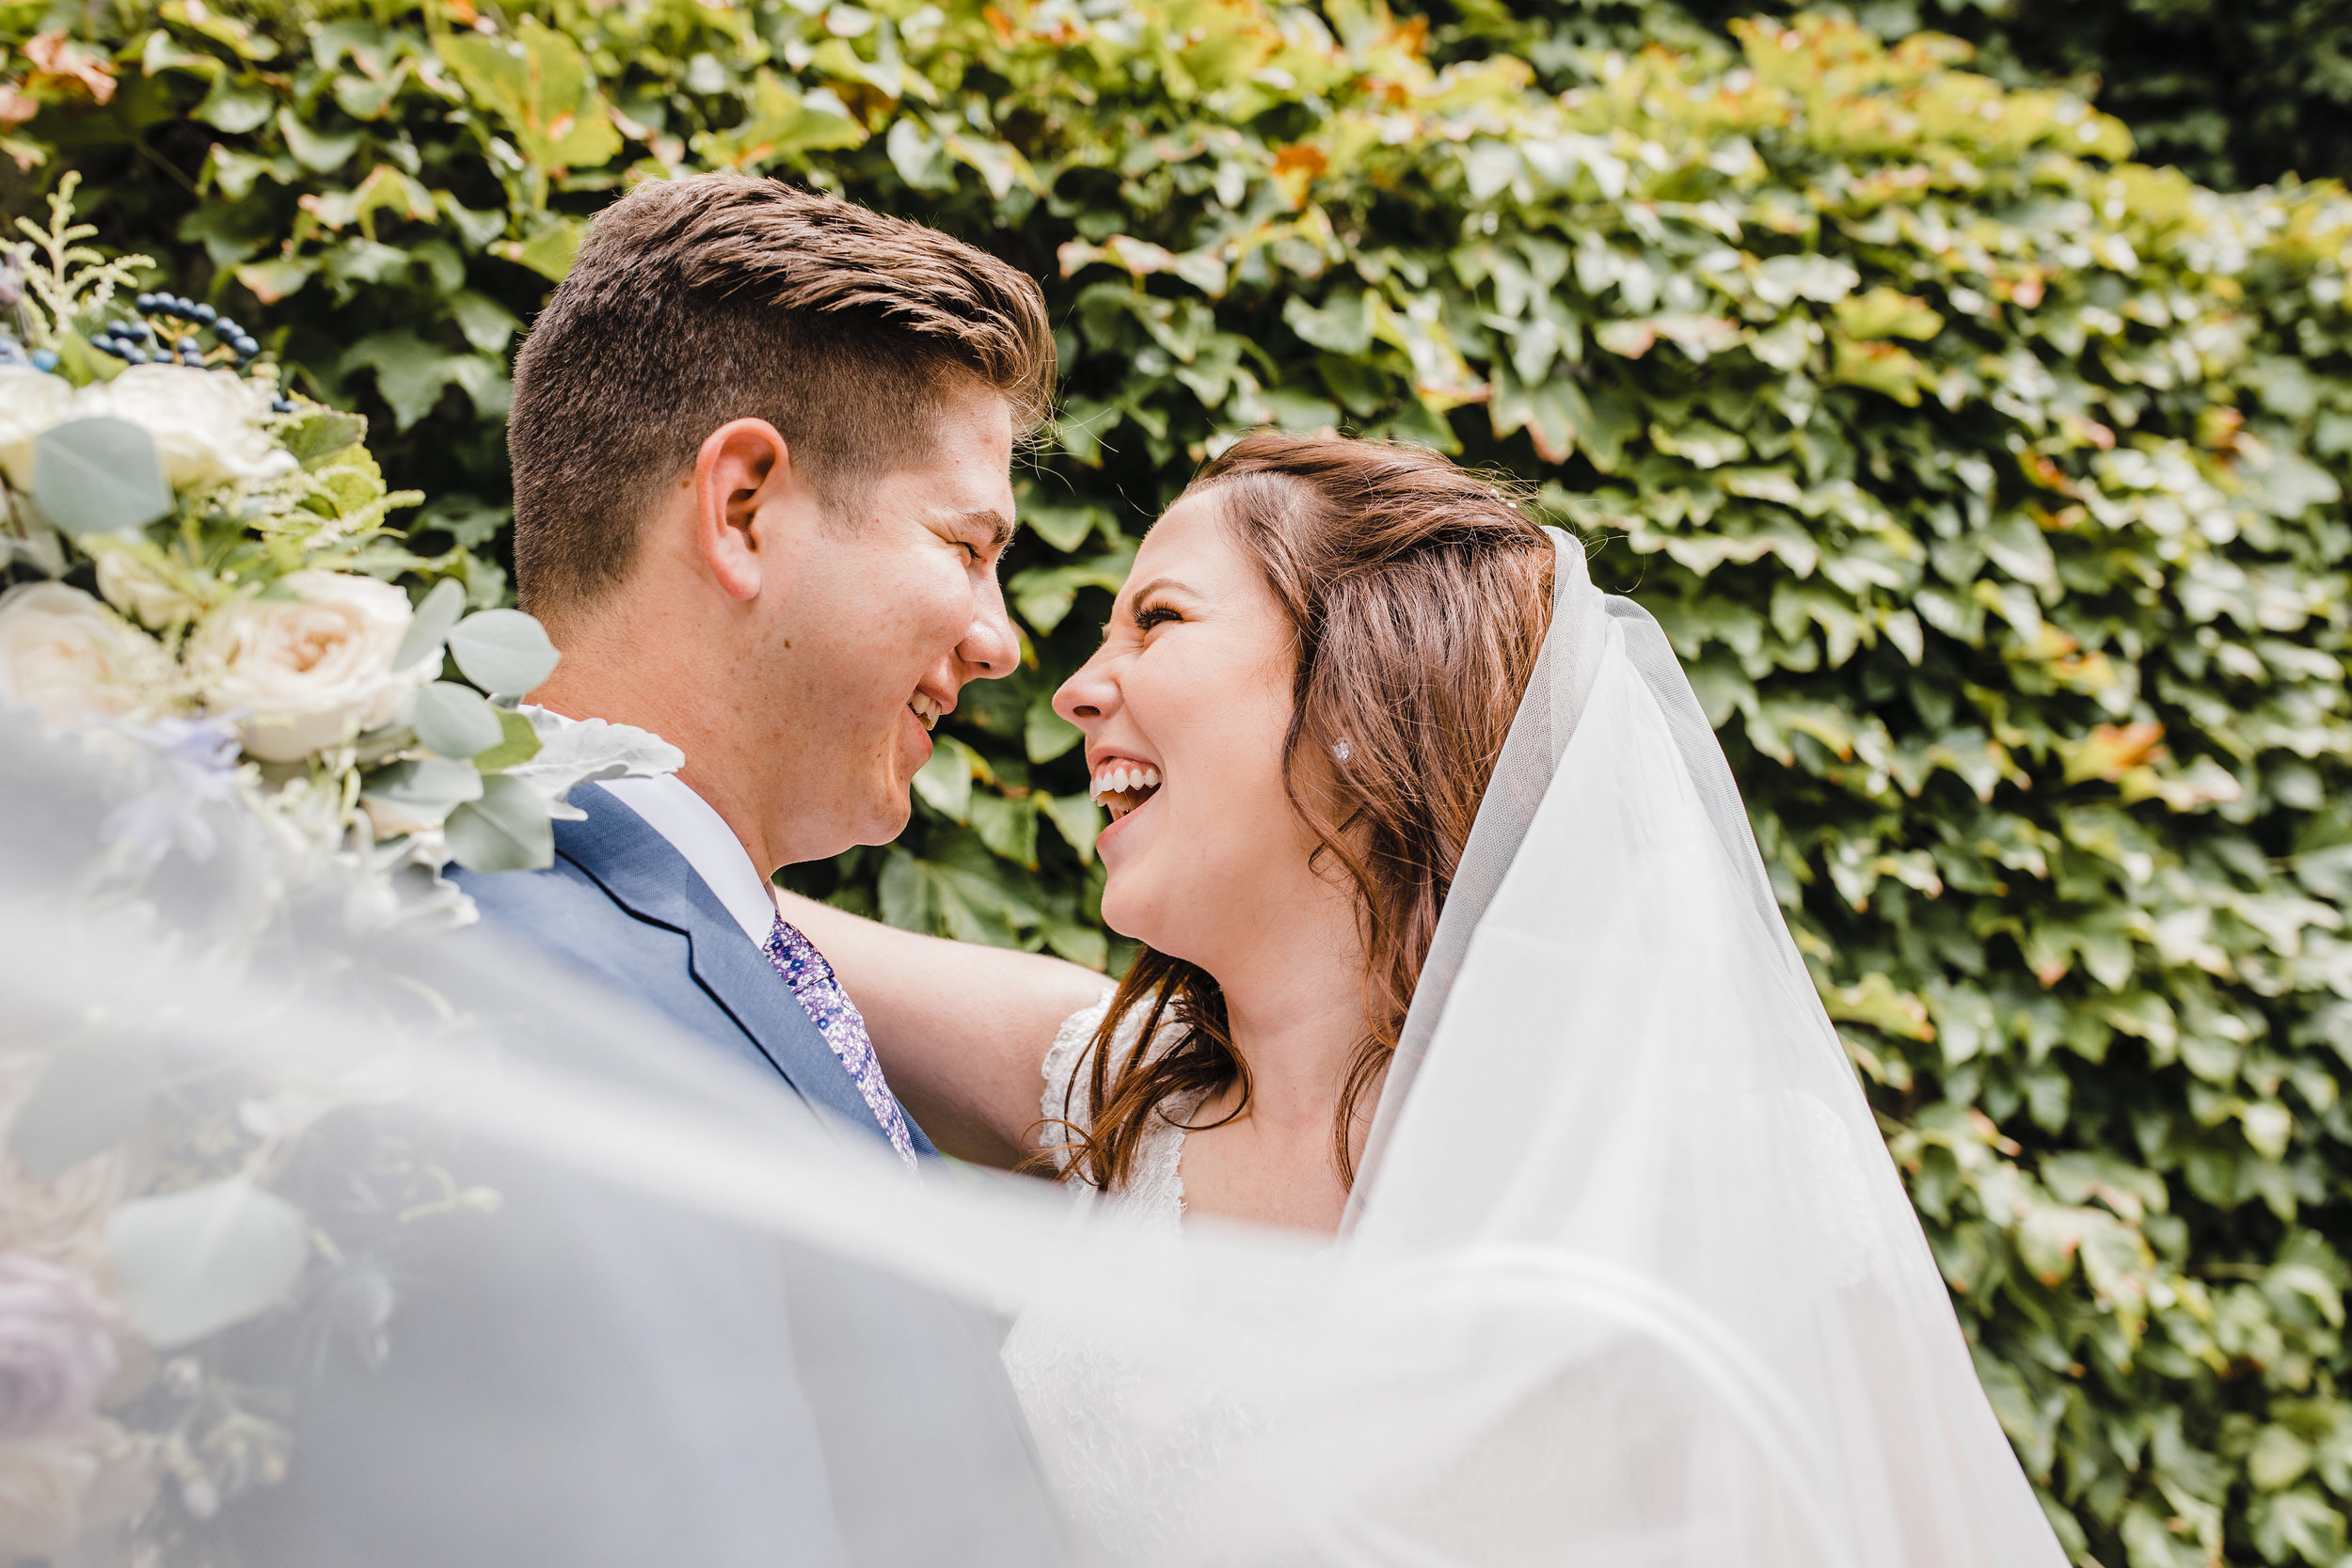 professional provo utah wedding photographer billowing veil laughing romantic playful ivy backdrop